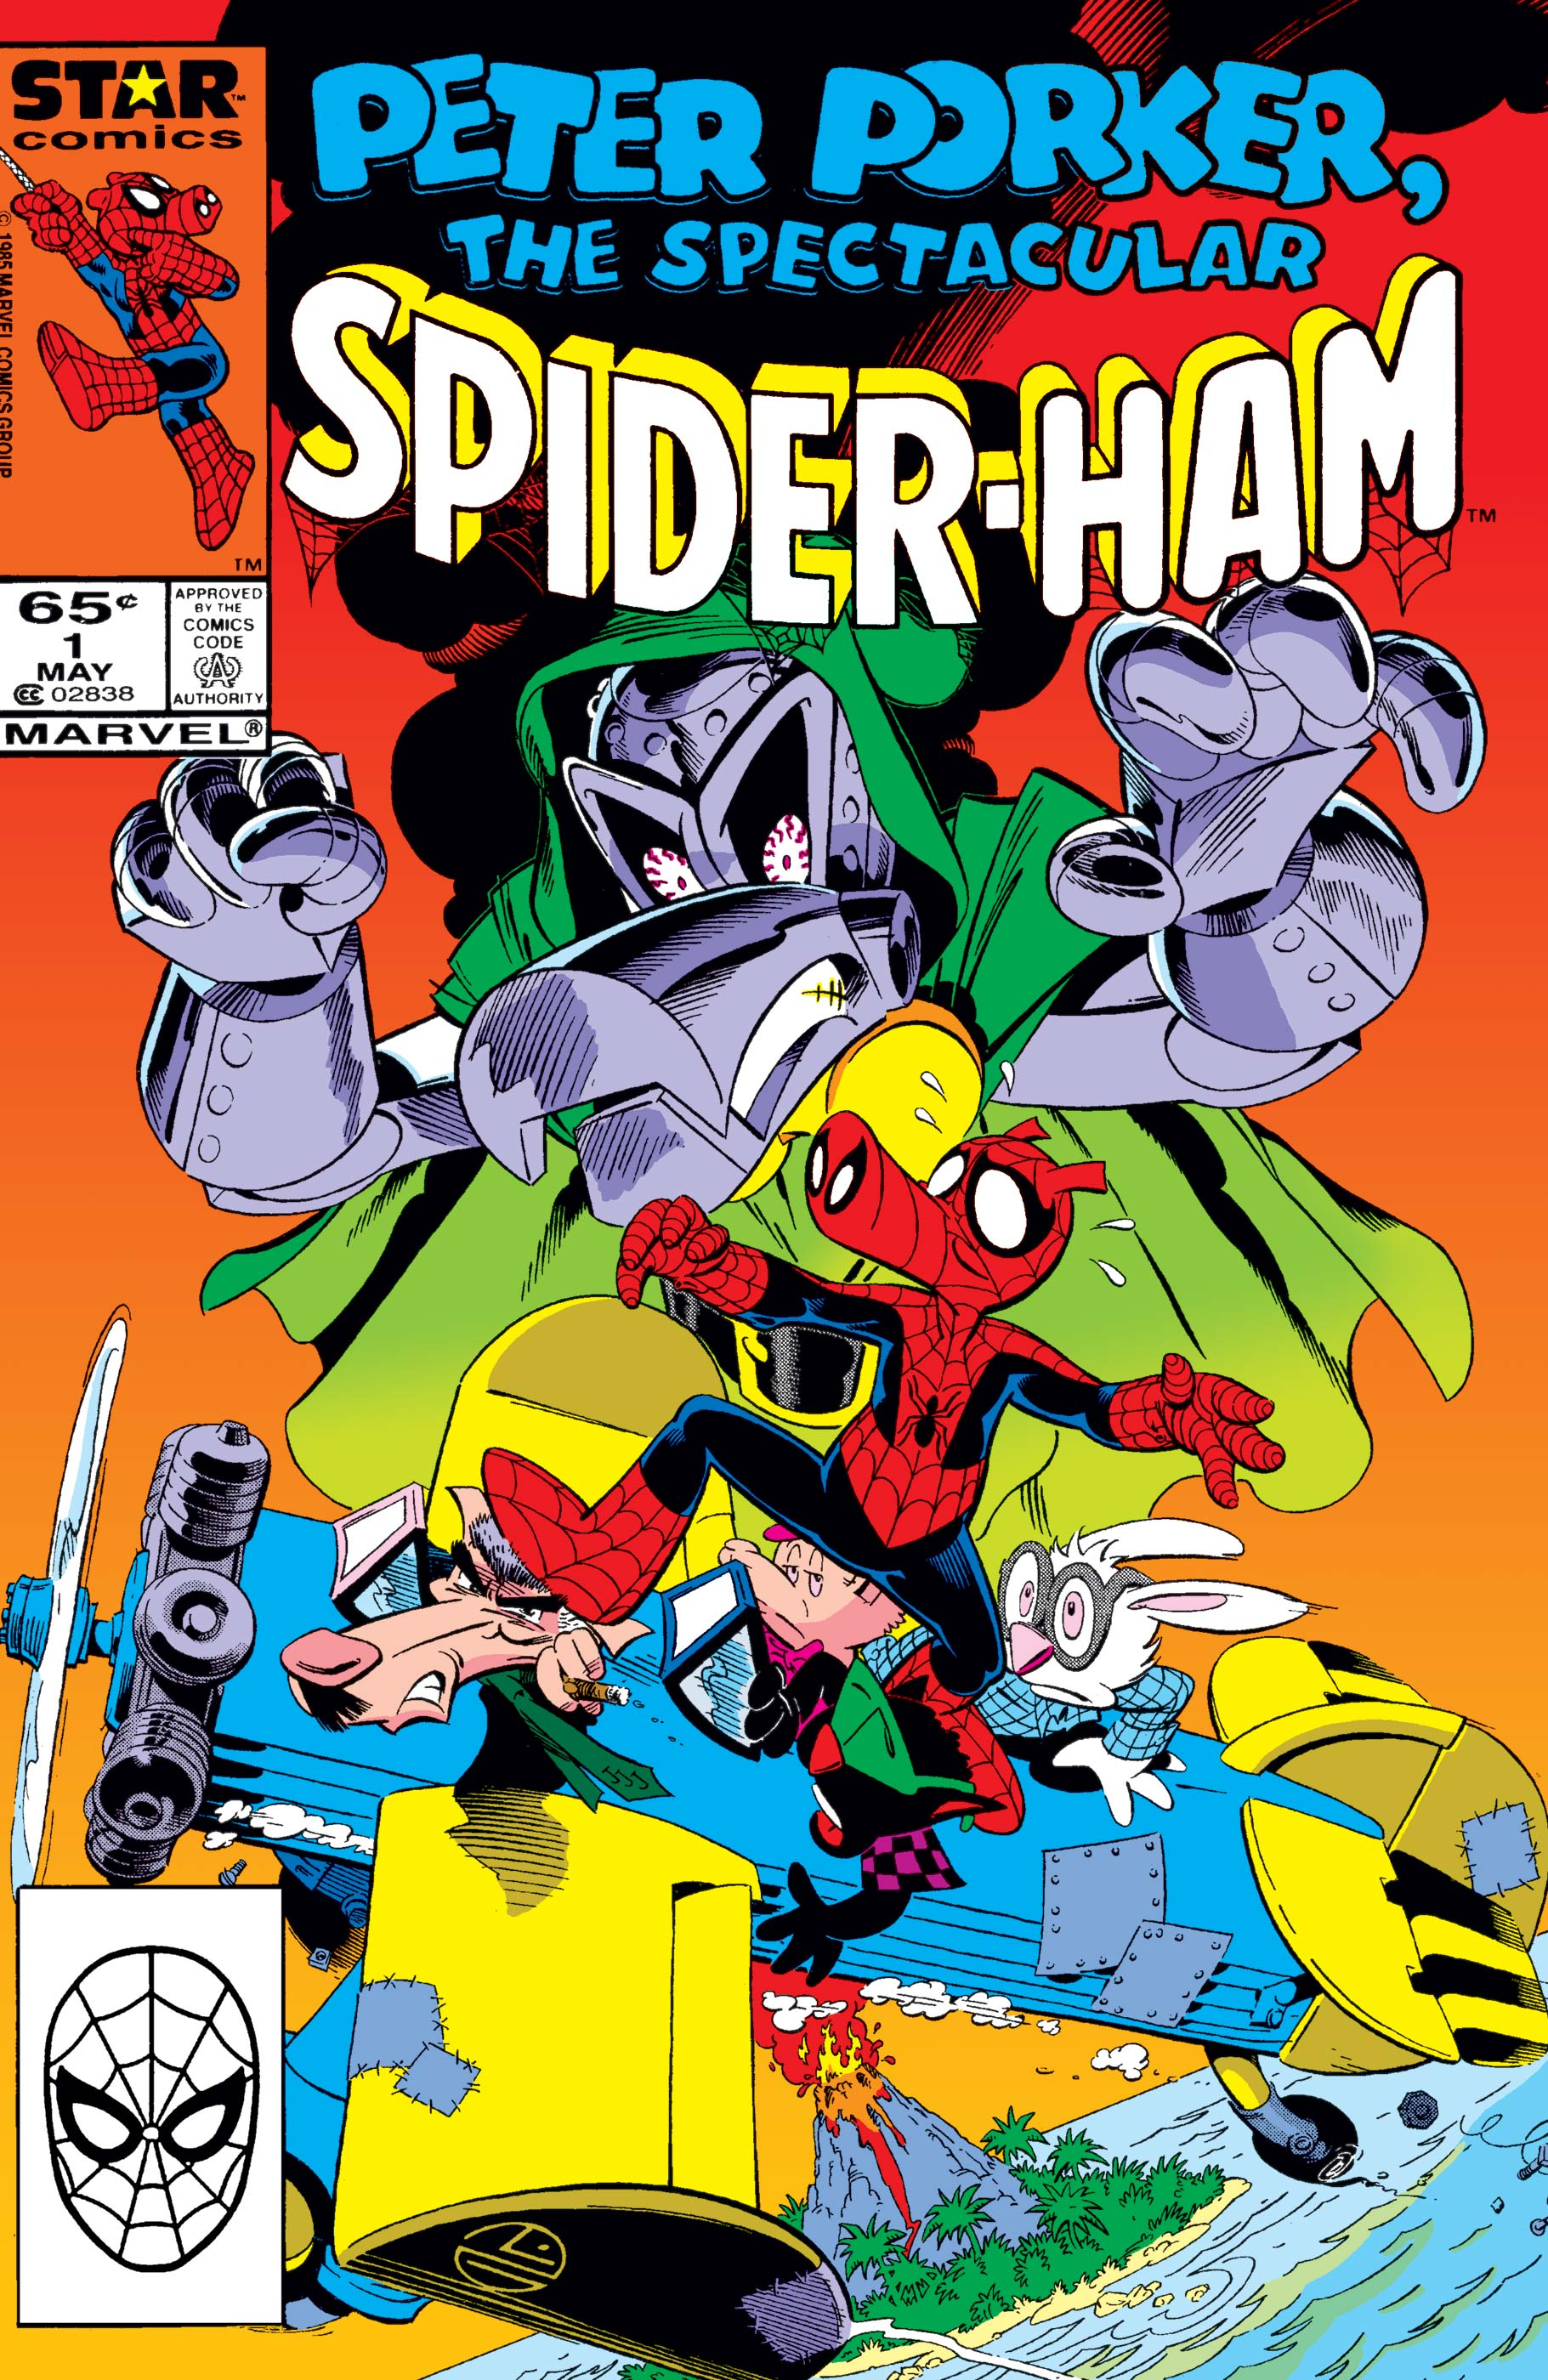 Peter Porker, the Spectacular Spider-Ham (1985) #1